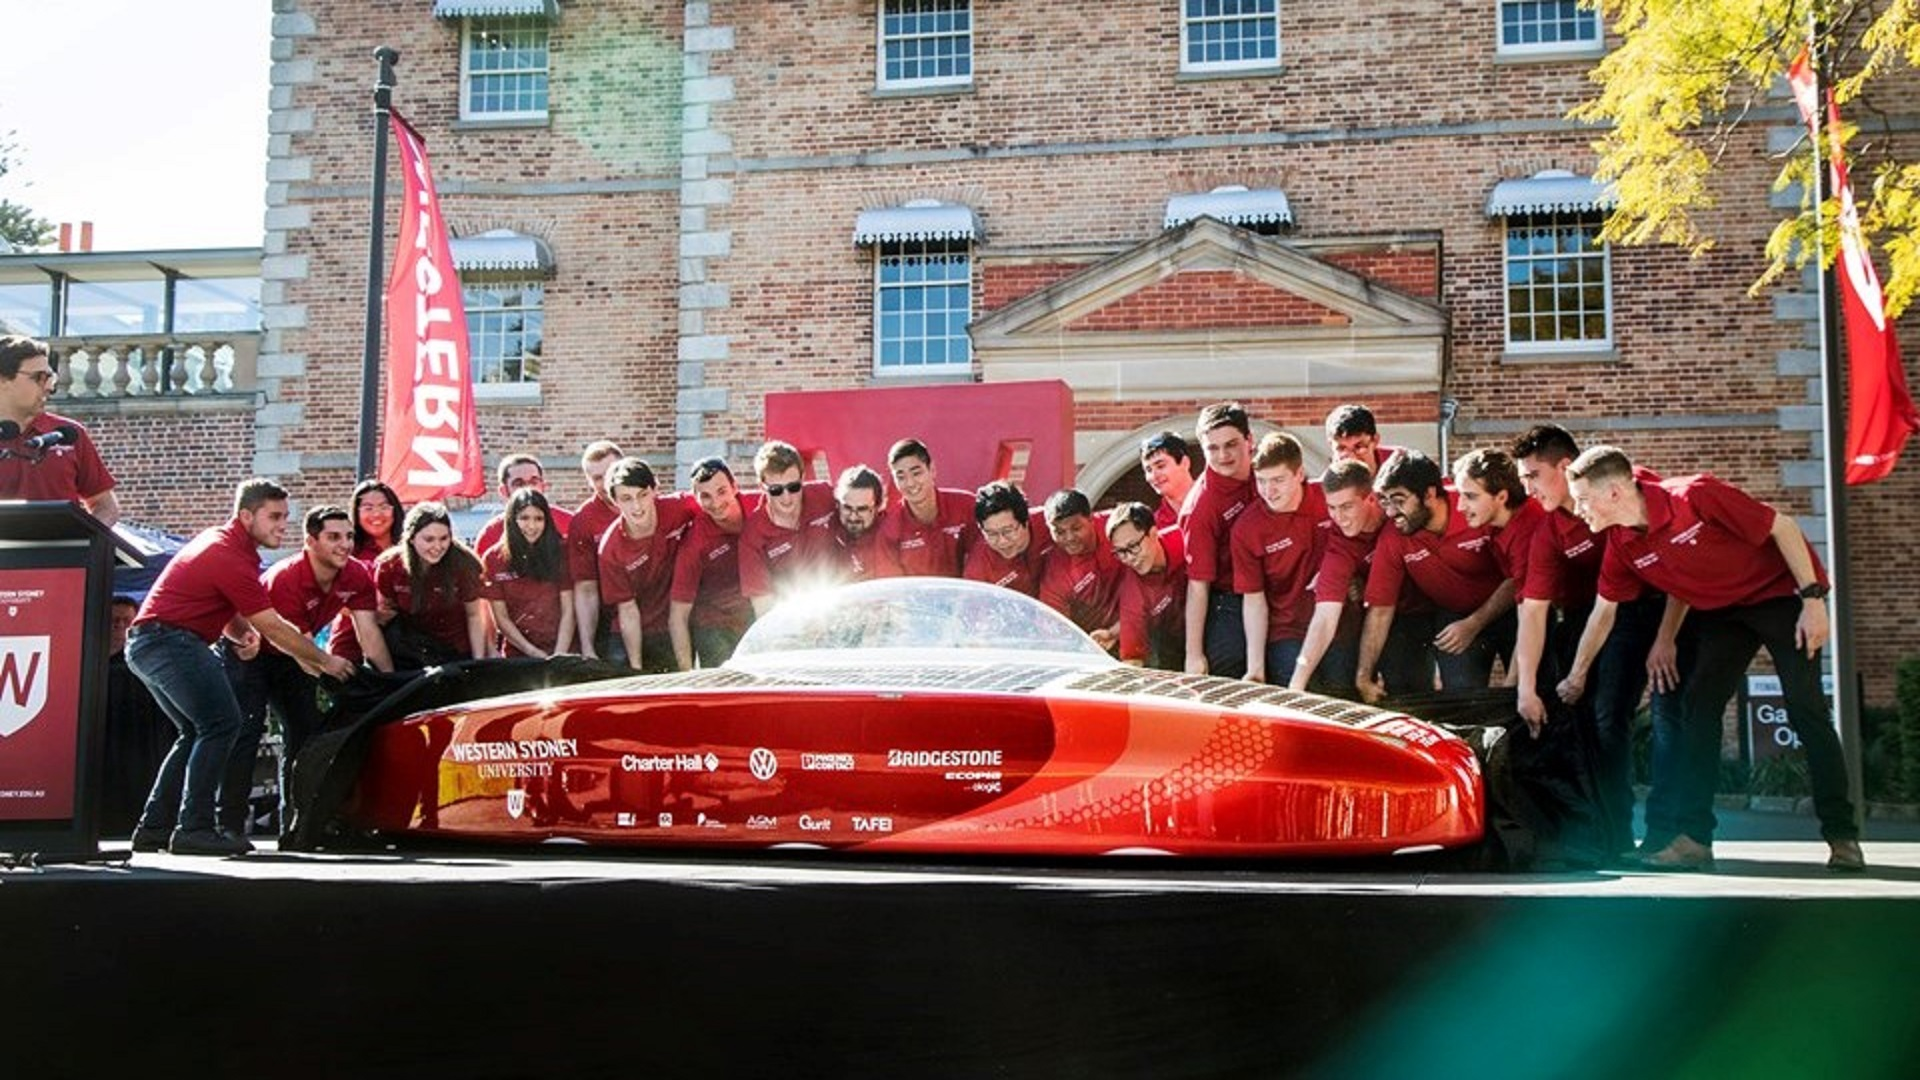 unlimited 3.0 solar car World Solar Challenge